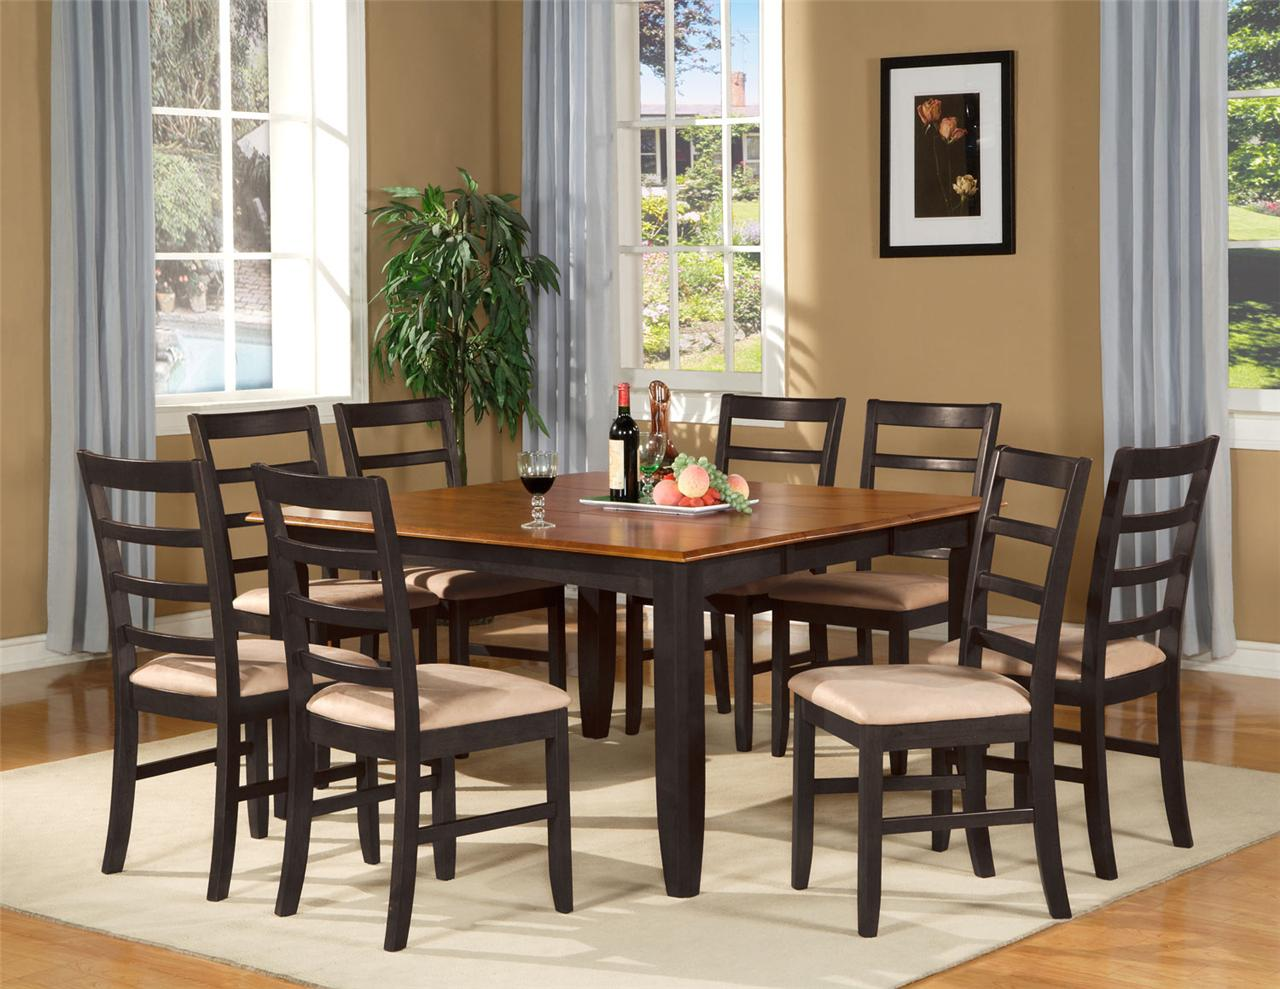 Dining Room Tables That Seat 8 Dining Room Tables That Seat 8 Black Dining Room Table With Leaf